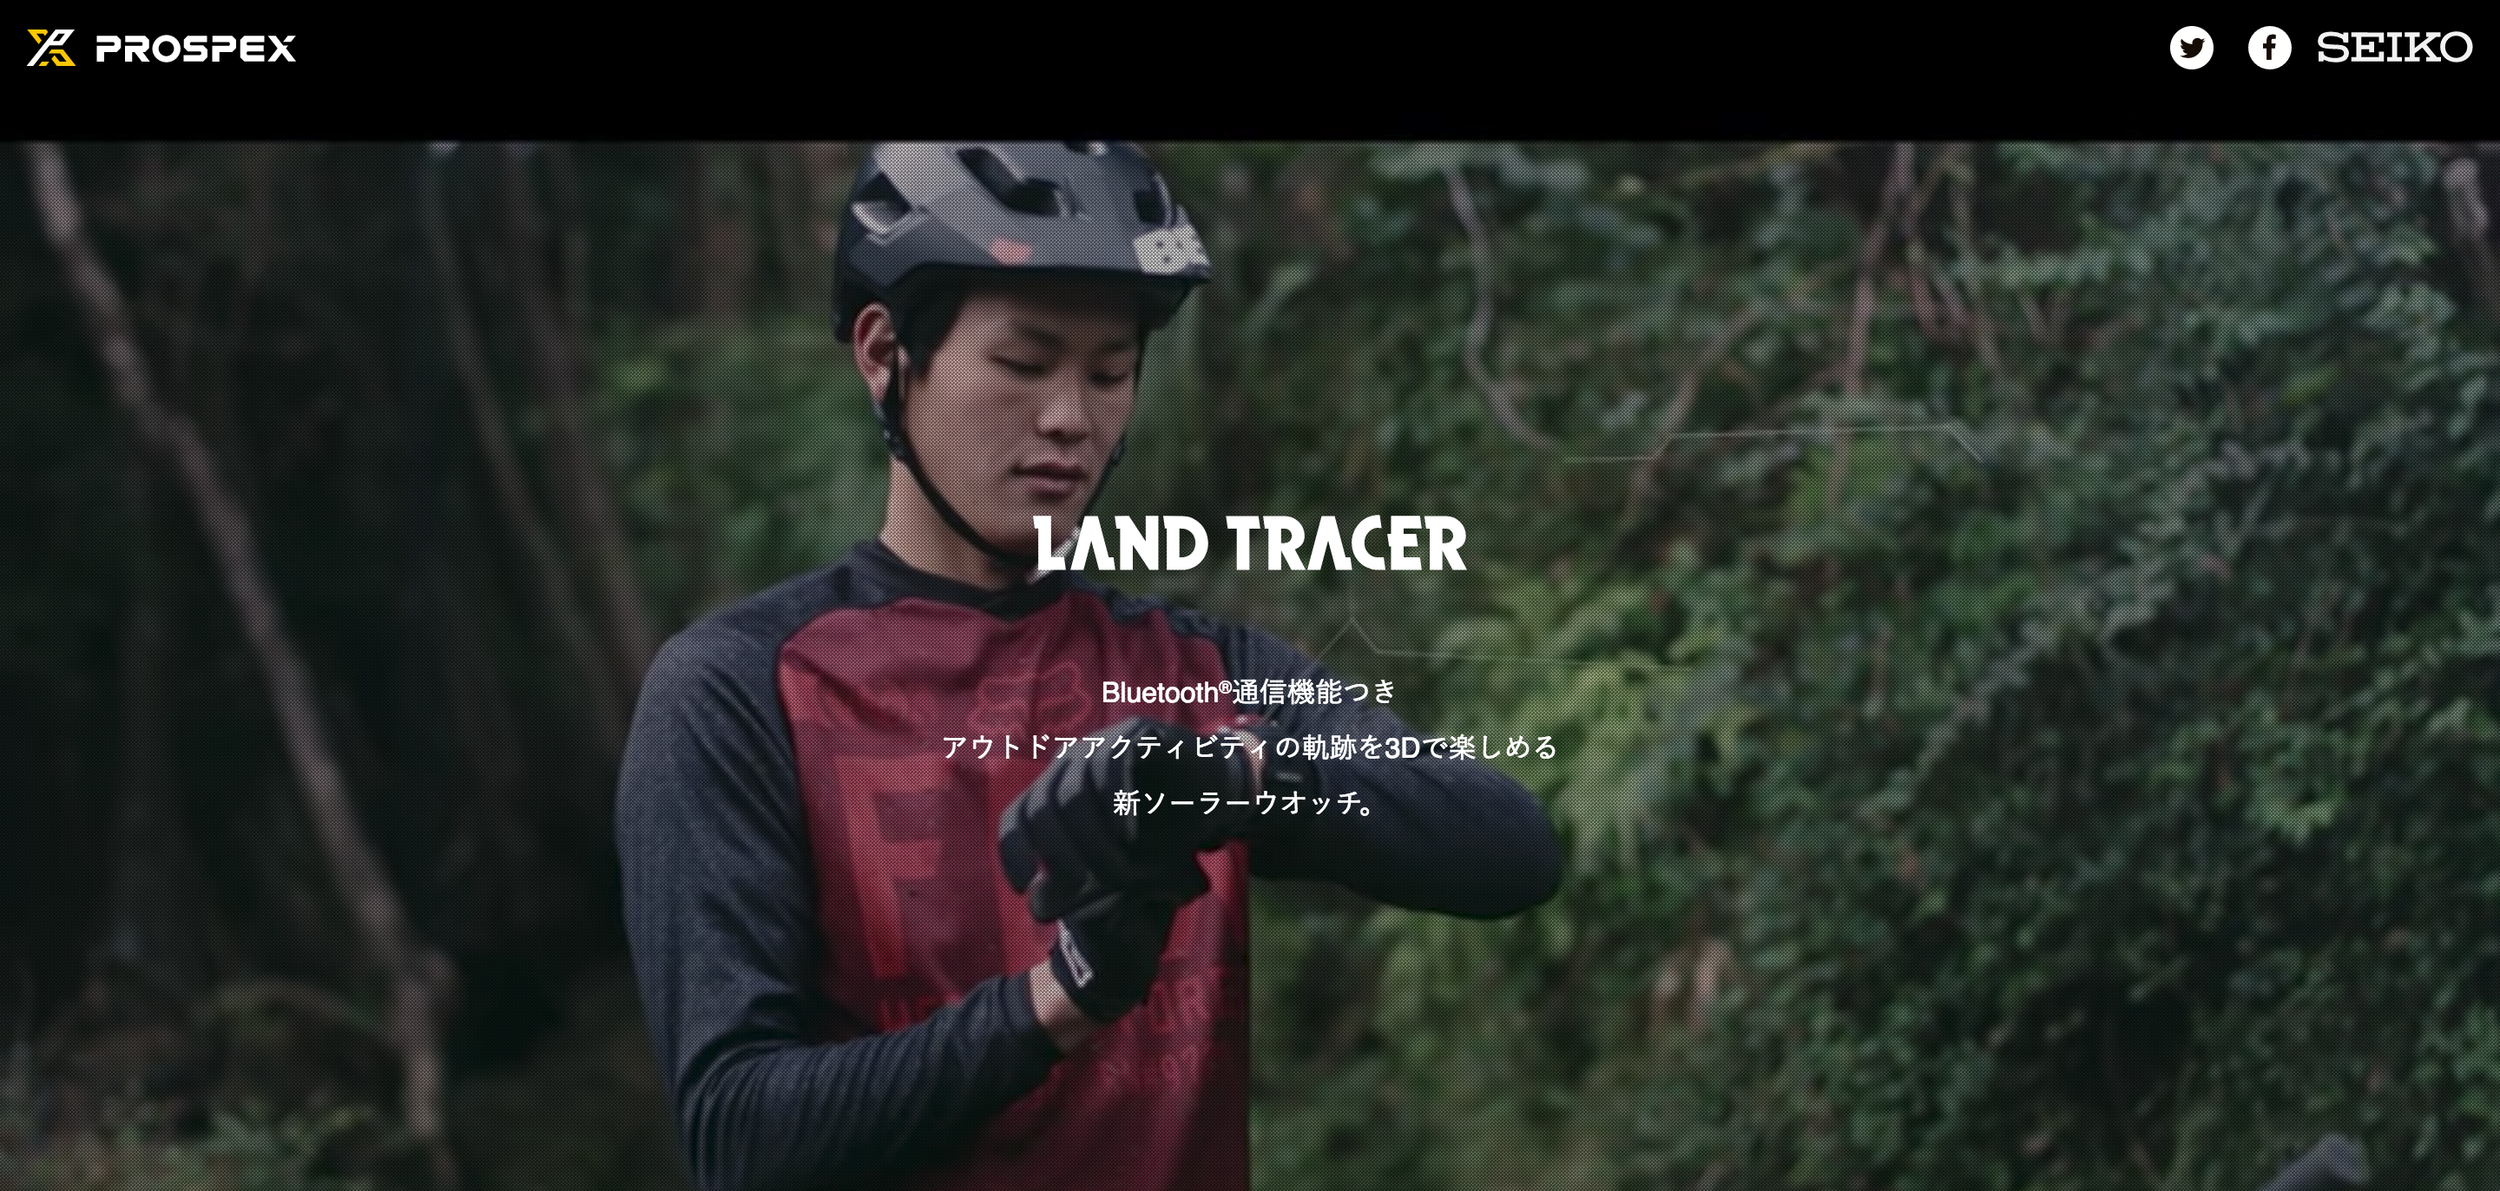 SEIKO - LAND TRACER   https://www.seiko-watch.co.jp/prospex/land/landtracer/special/